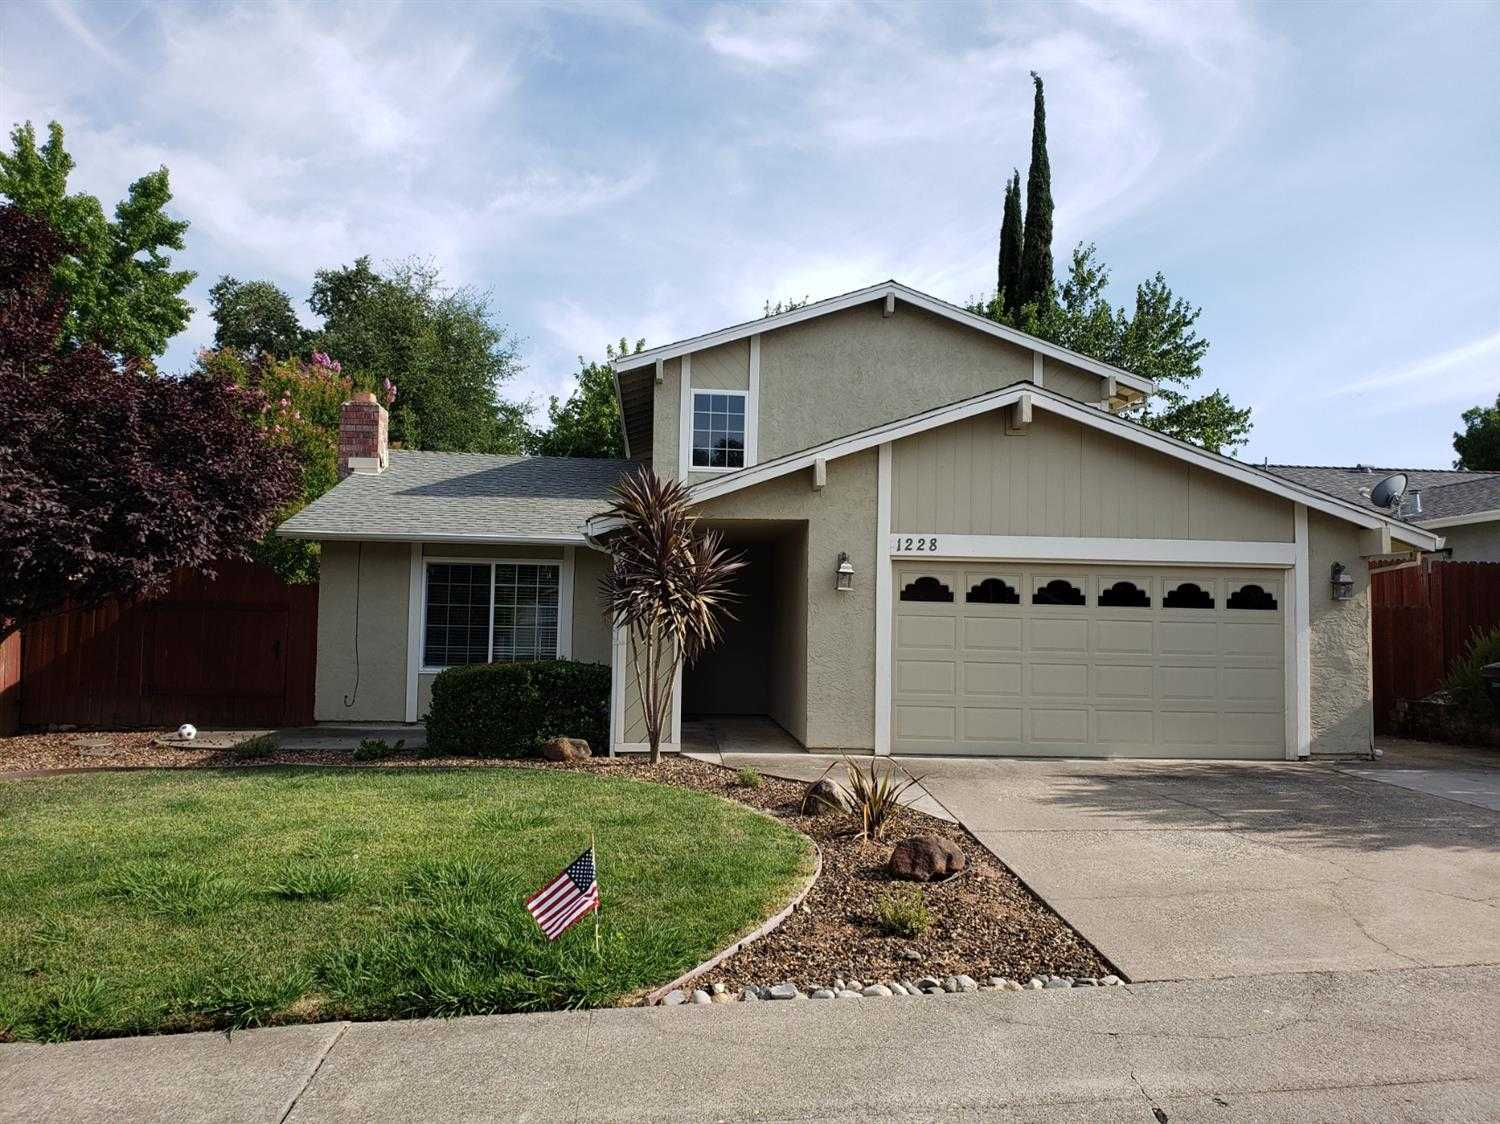 $419,990 - 3Br/2Ba -  for Sale in Roseville